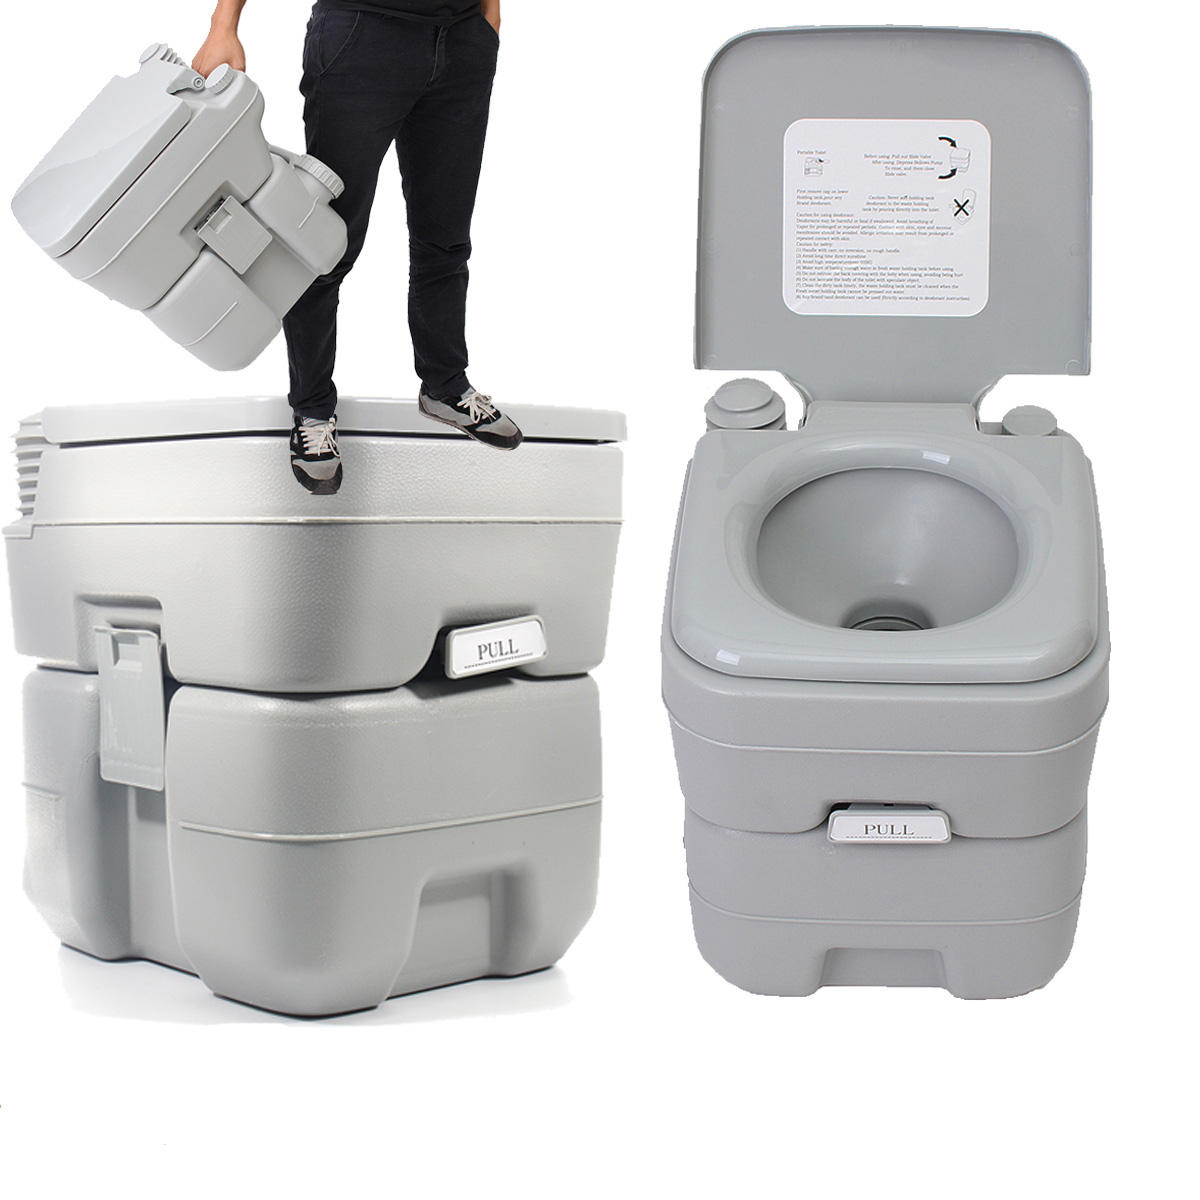 Camping Toilet 20l Portable Toilet Outdoor Camping Potties W Closestool Hiking Travel Emergency